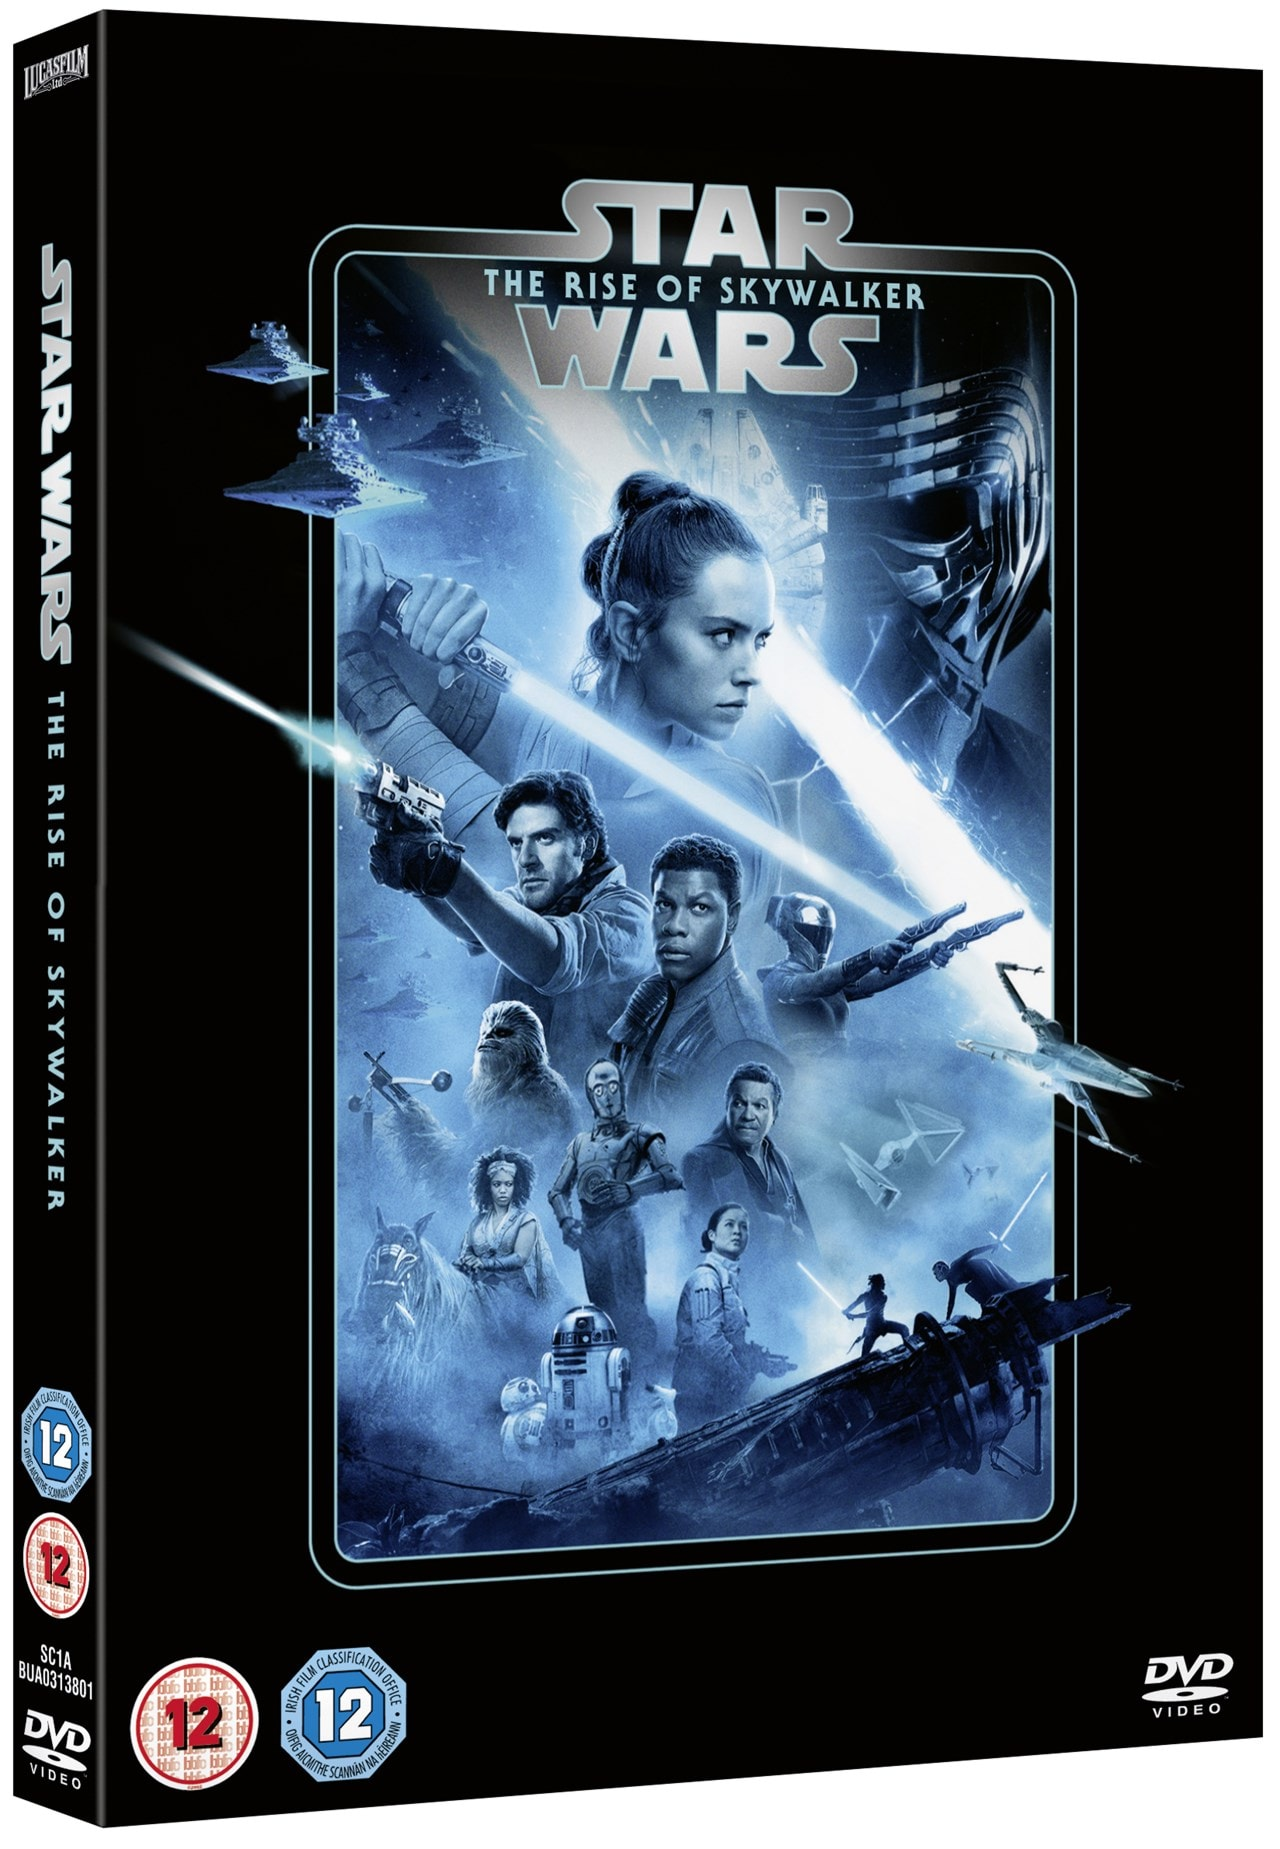 Star Wars: The Rise of Skywalker - 2